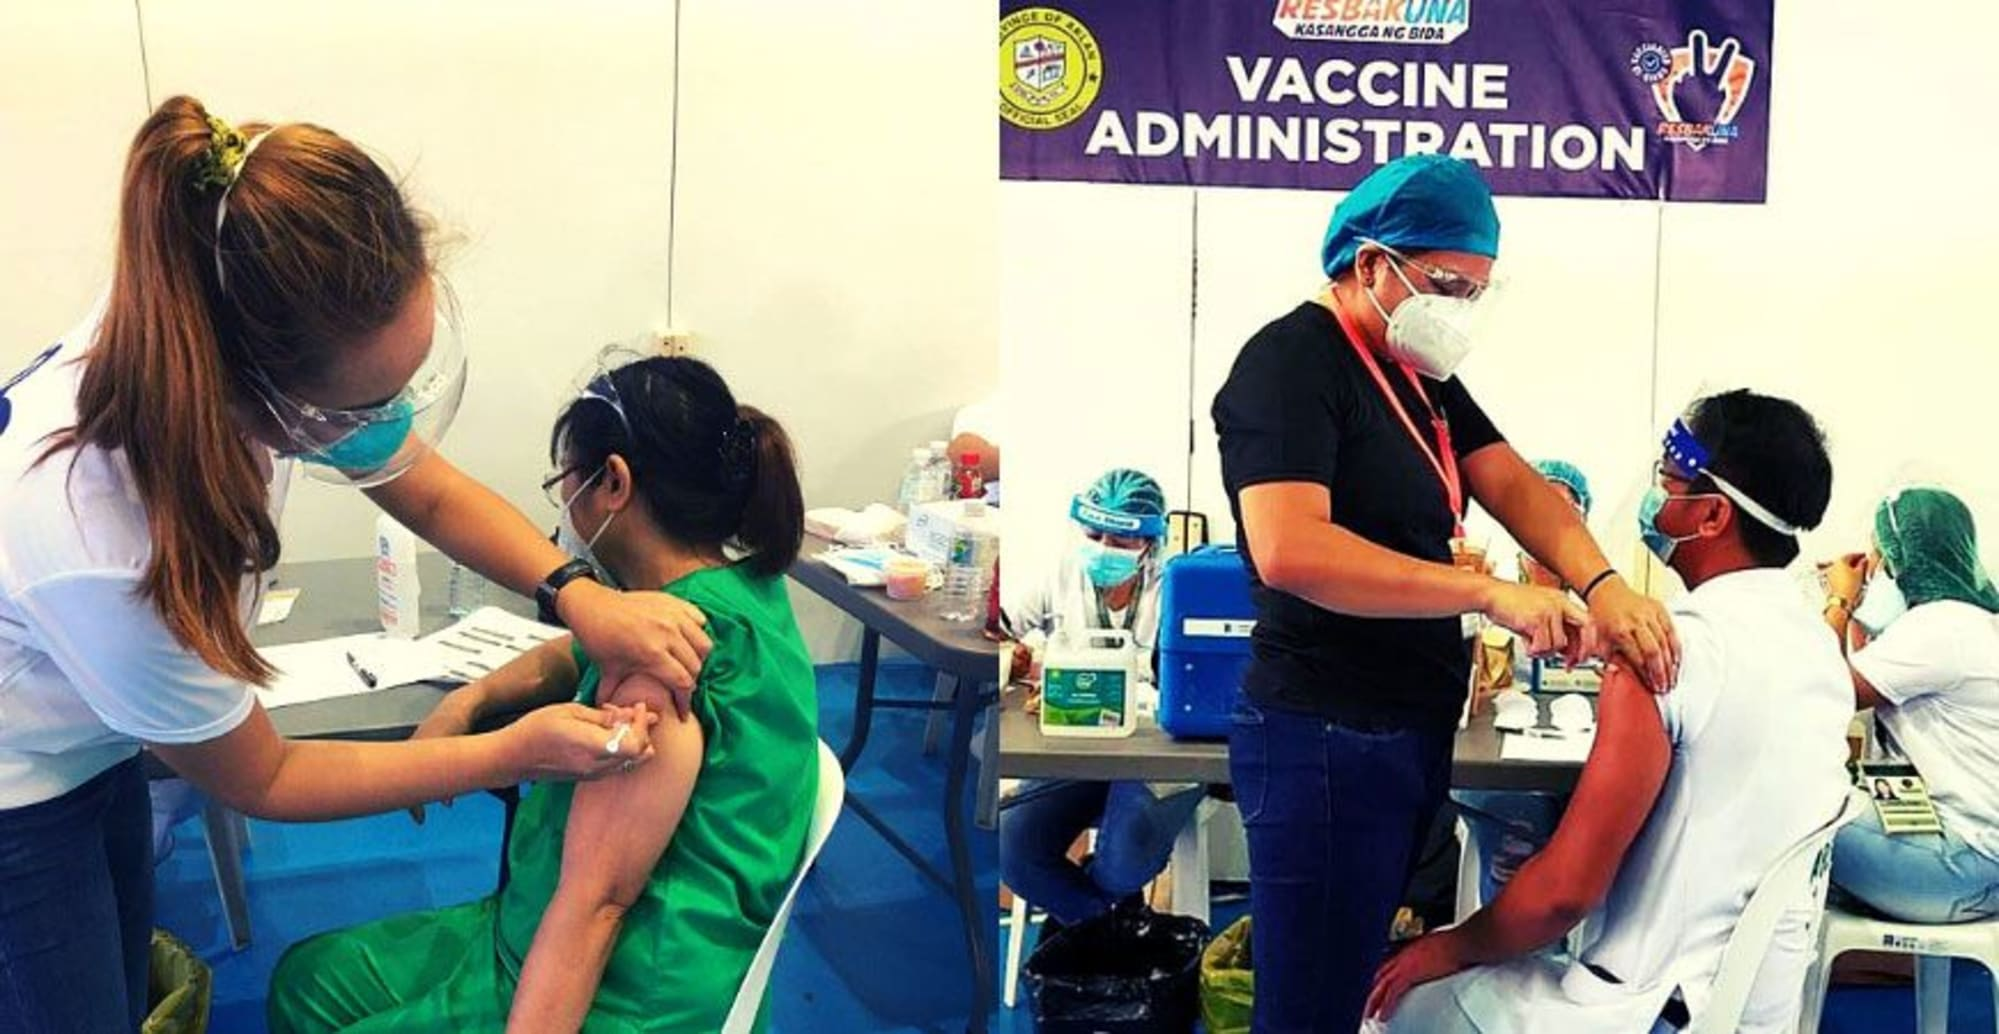 2,420 Sinovac vaccines has been administered to hospital and frontline health care workers in Aklan